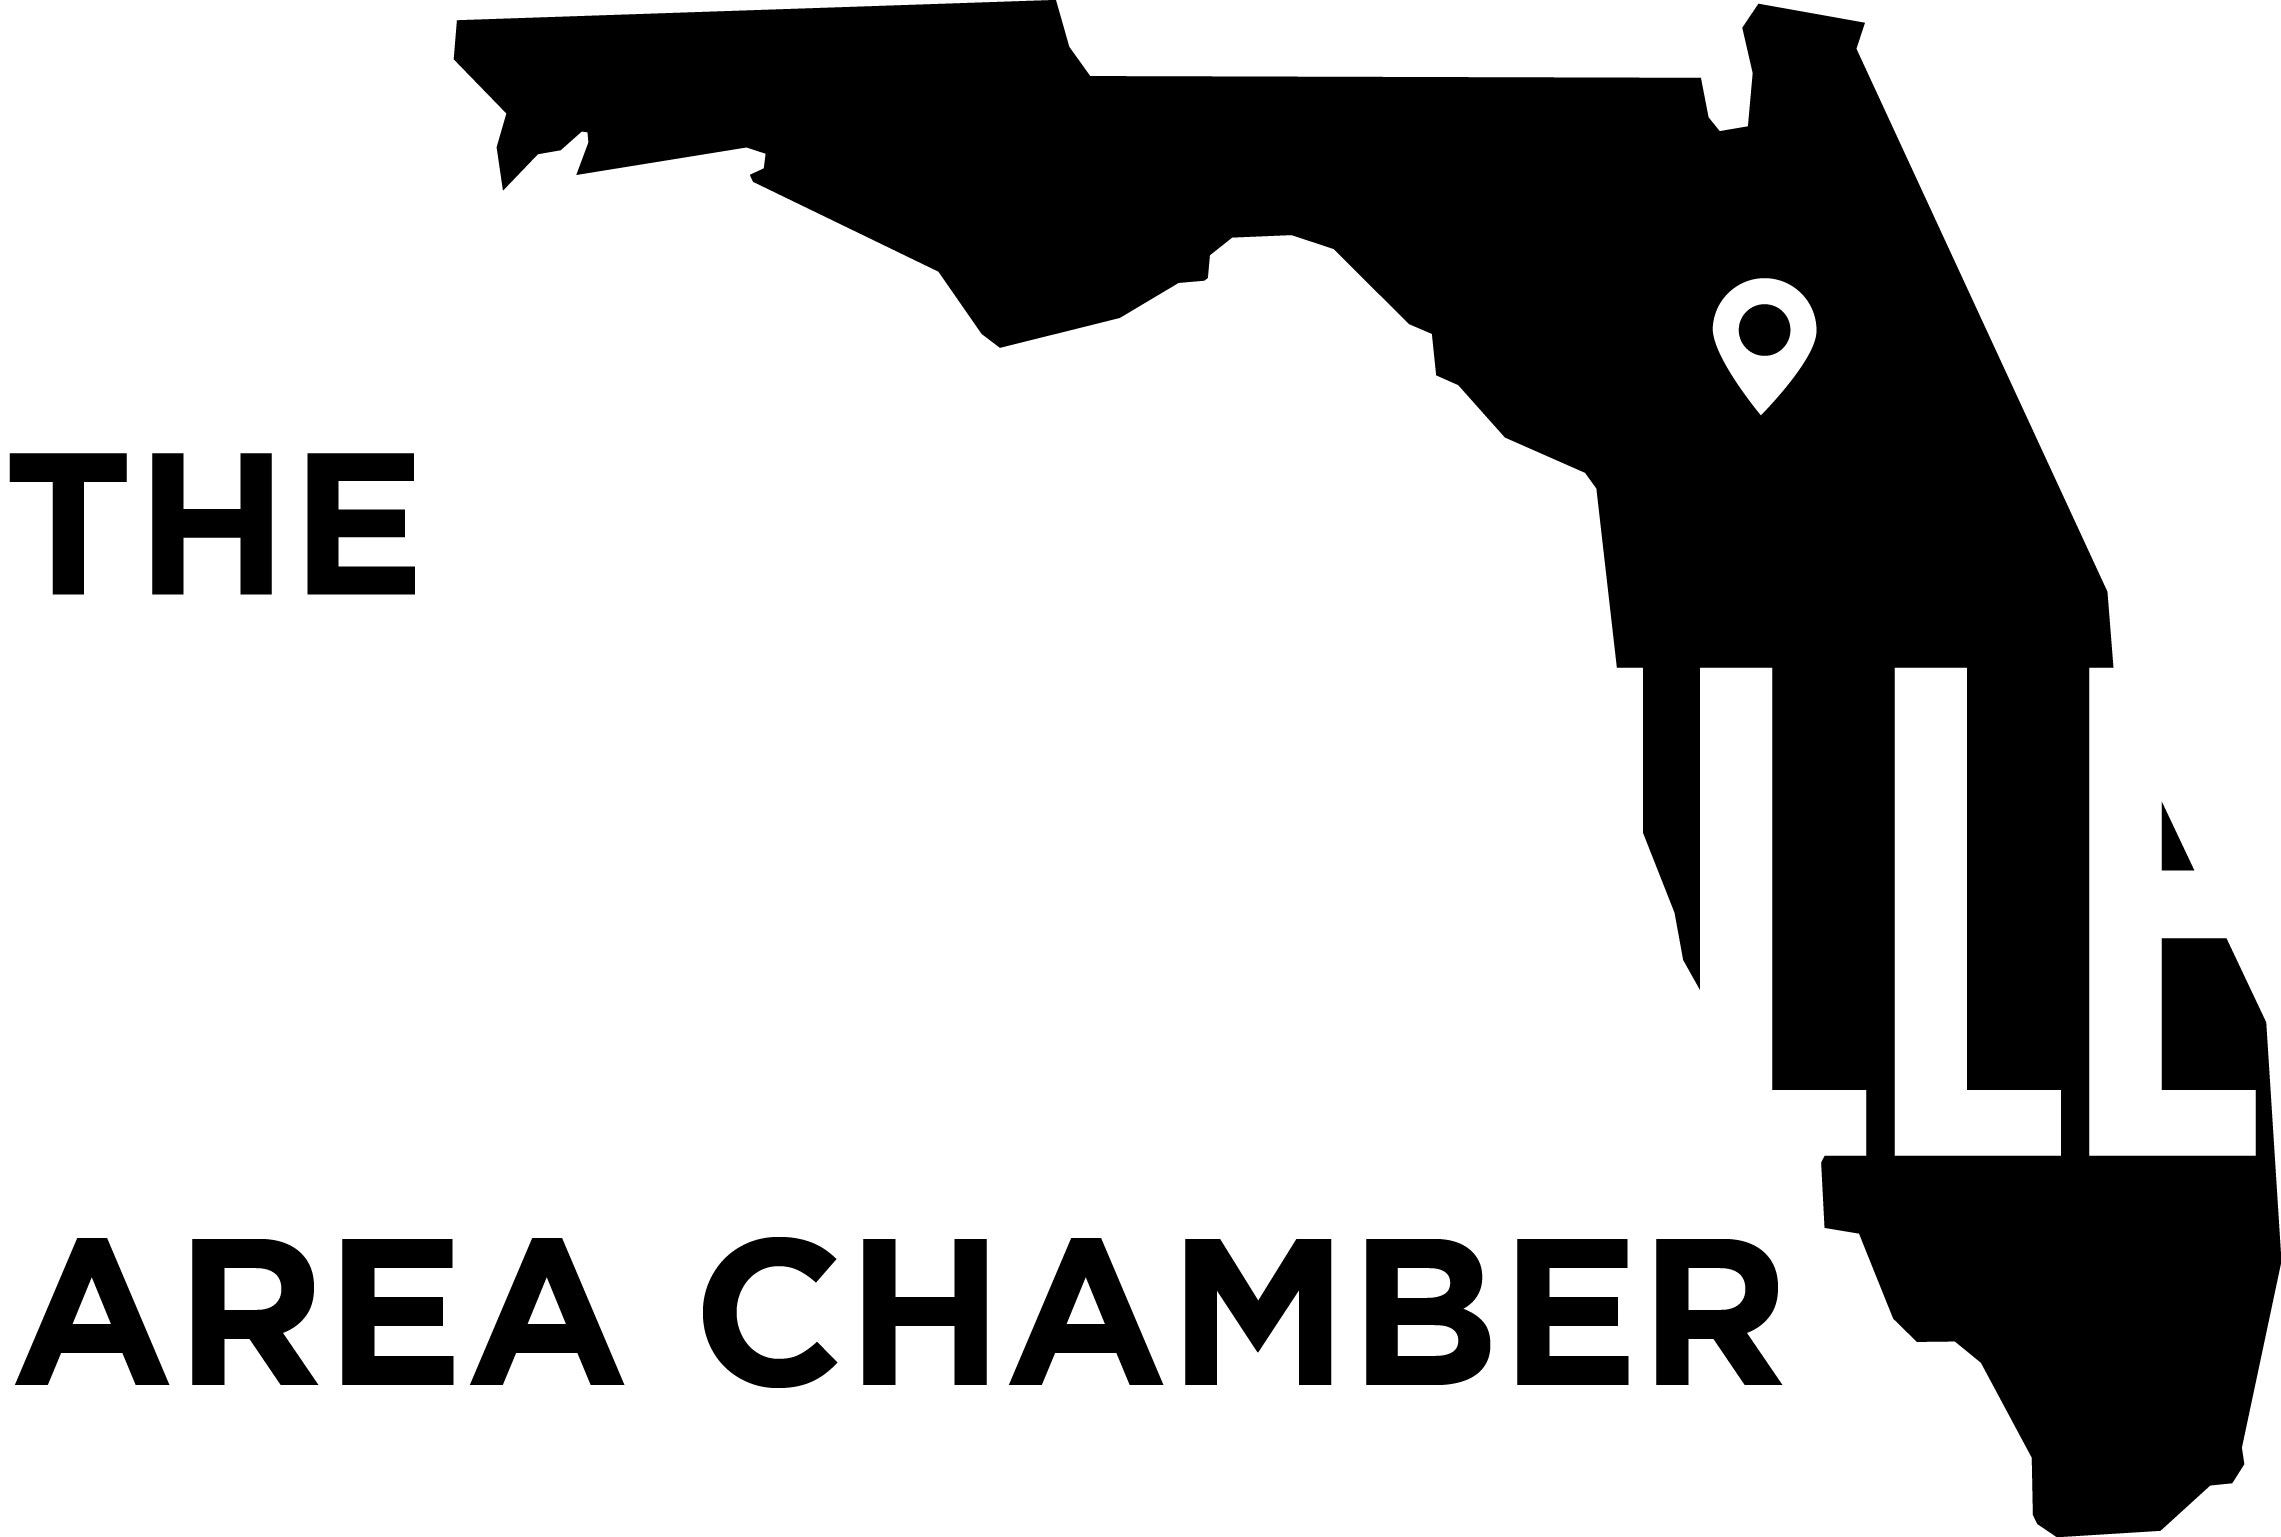 Chamber Logo Black and White